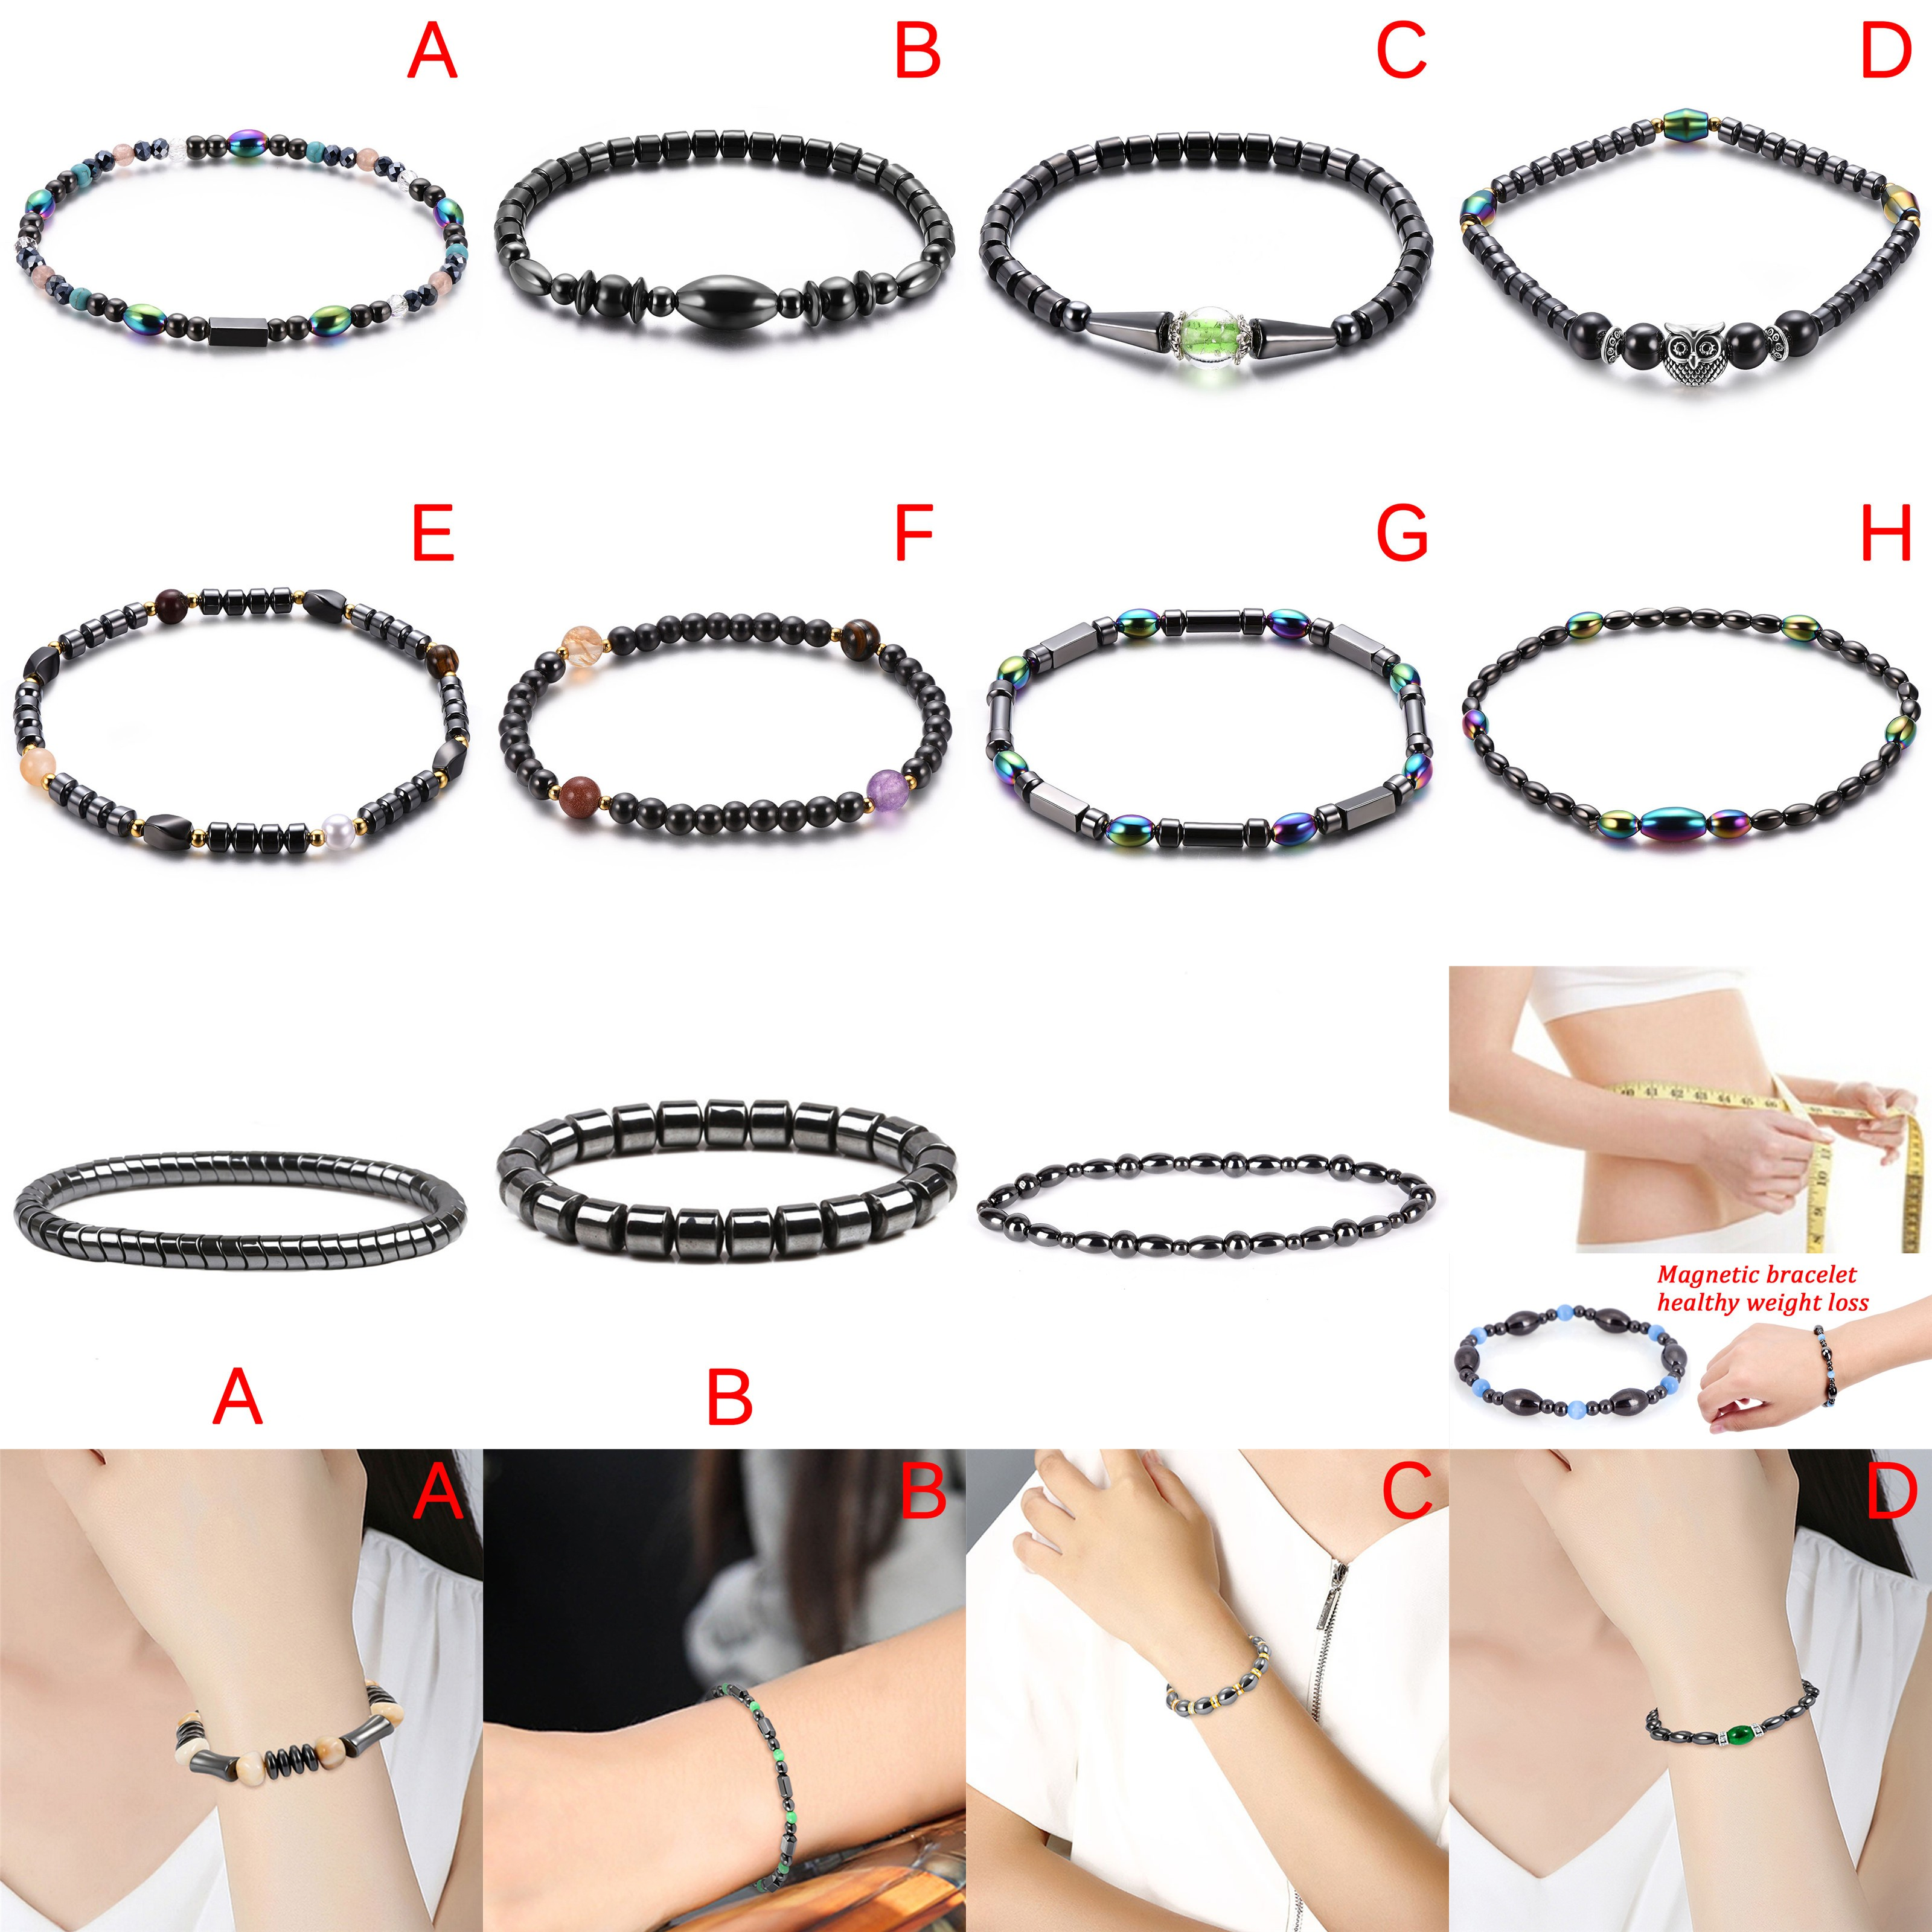 Multi-color Magnetic Therapy Bracelet Adjustable Weight Loss Bracelet Round Black Stone Health Care Luxury Slimming Product